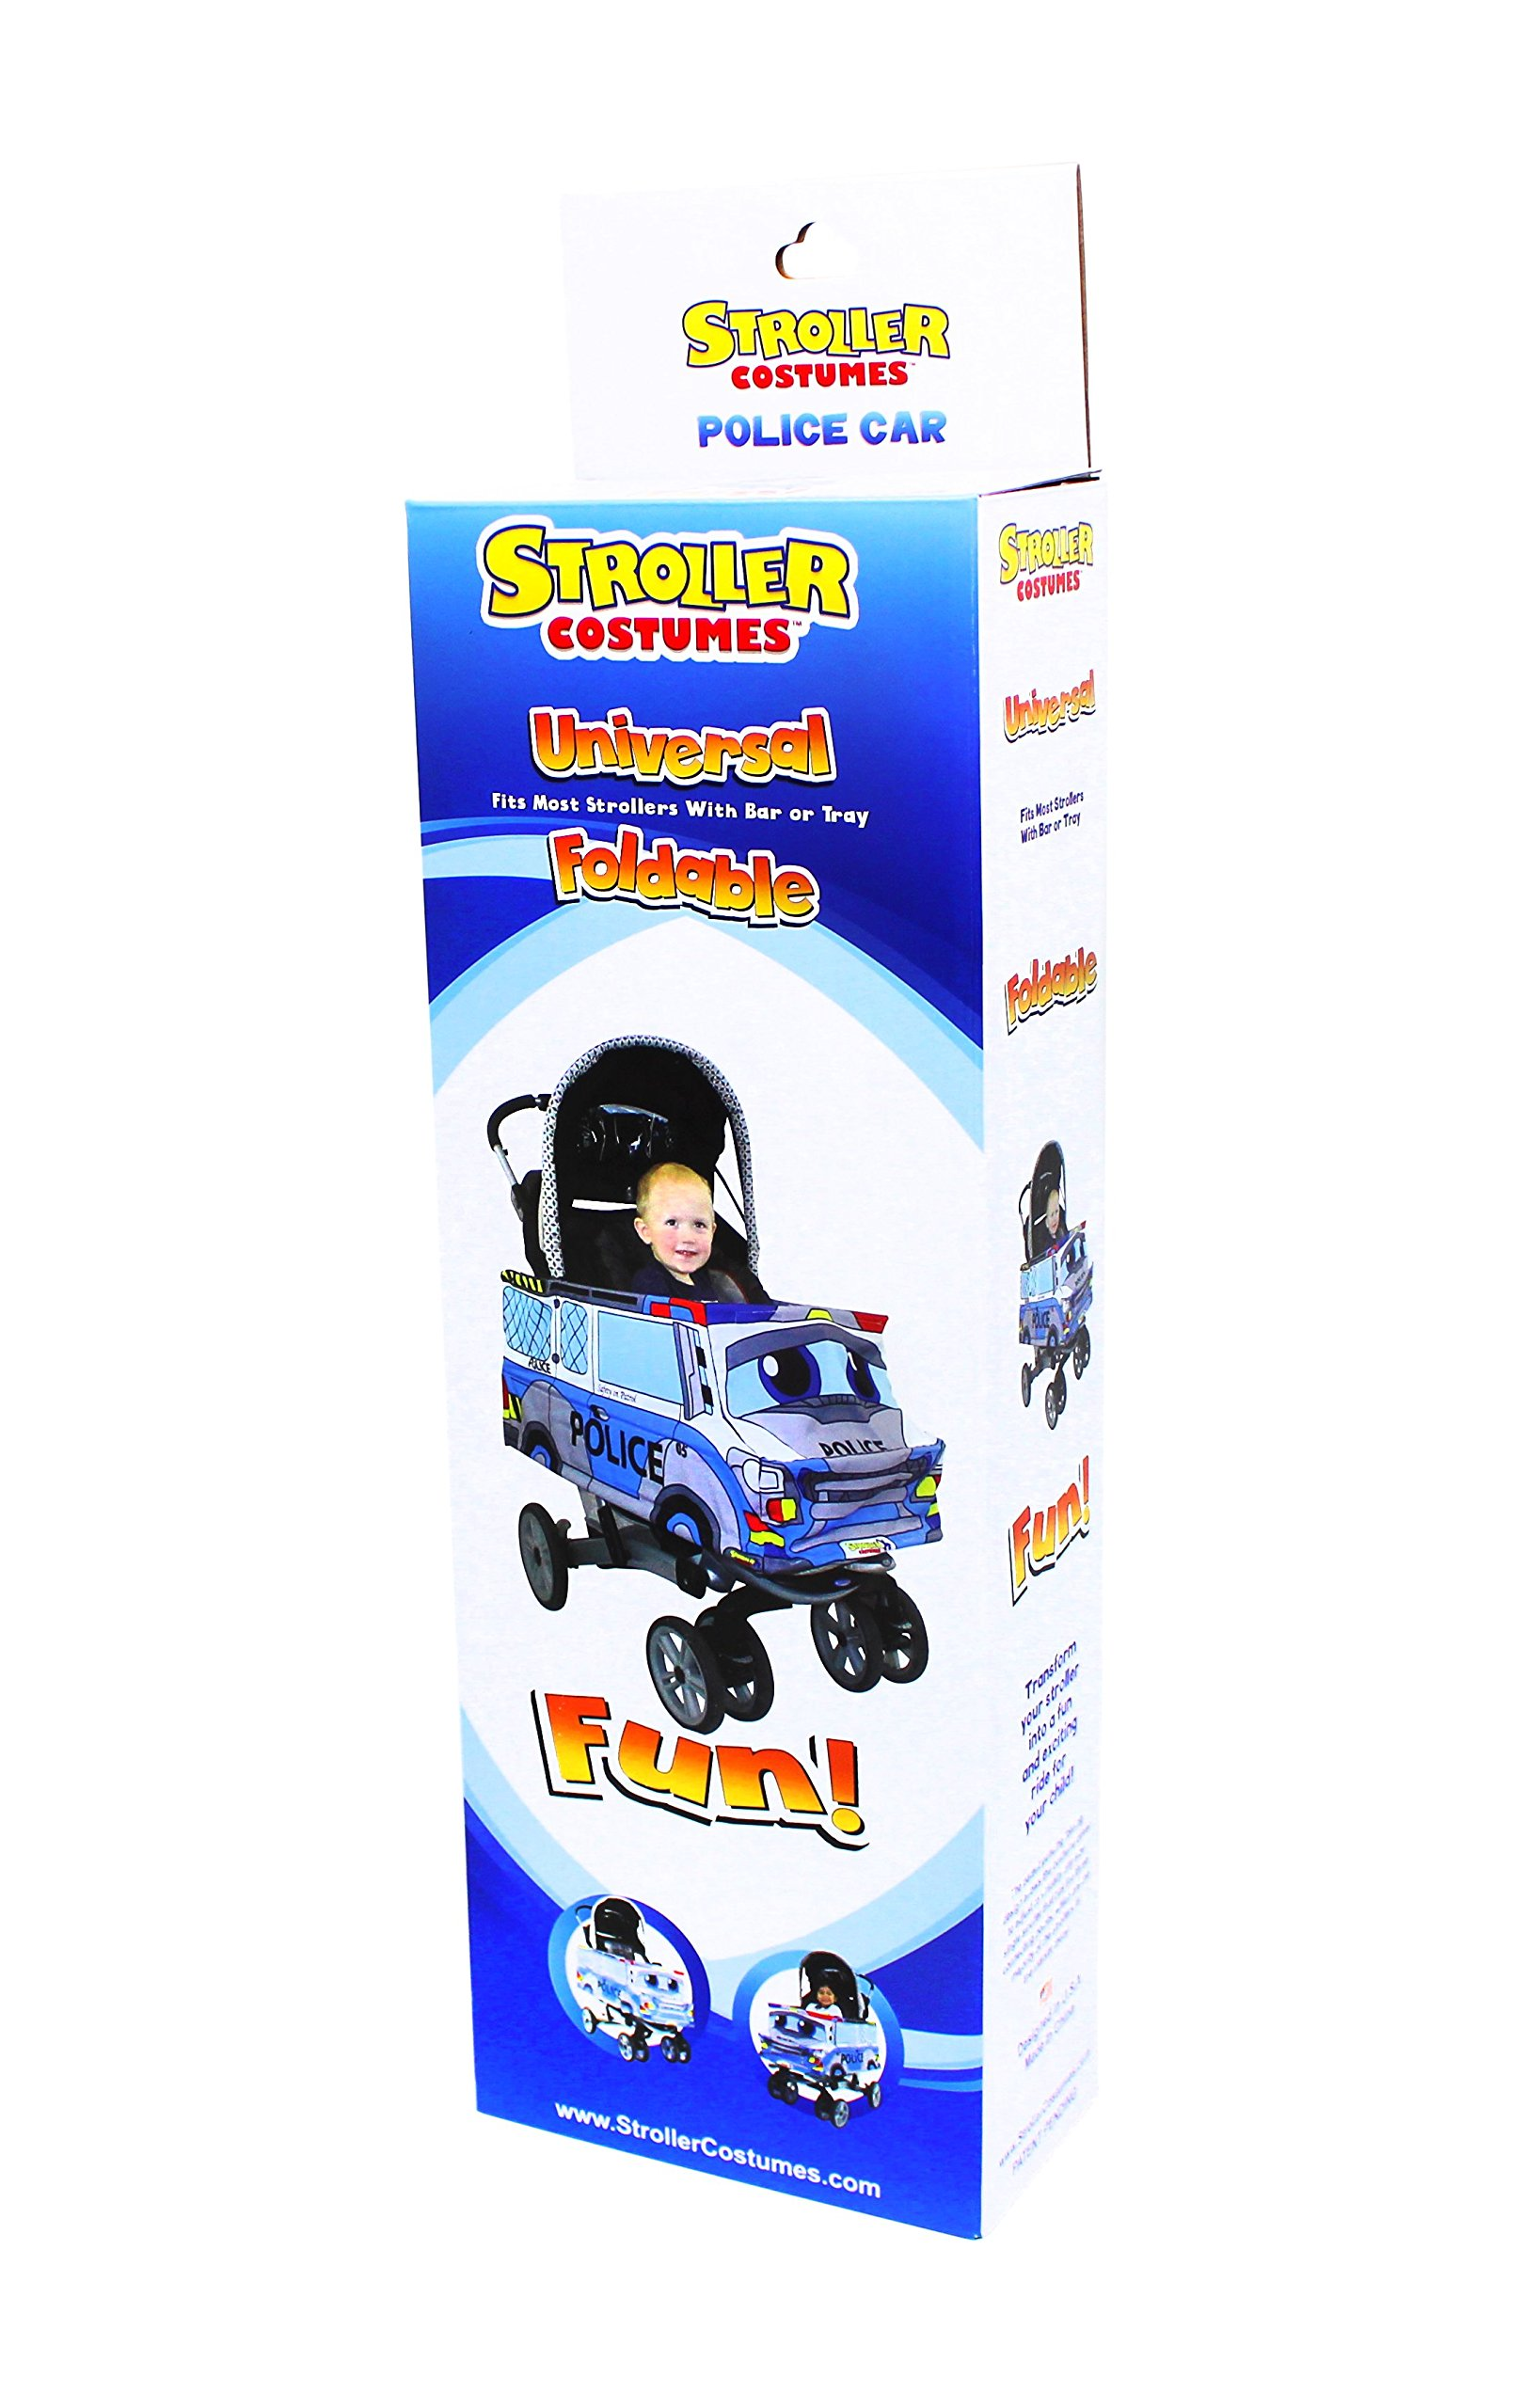 Police Car Stroller Costume Turns Stroller Into a Ride on Baby/Toddler Car Toy